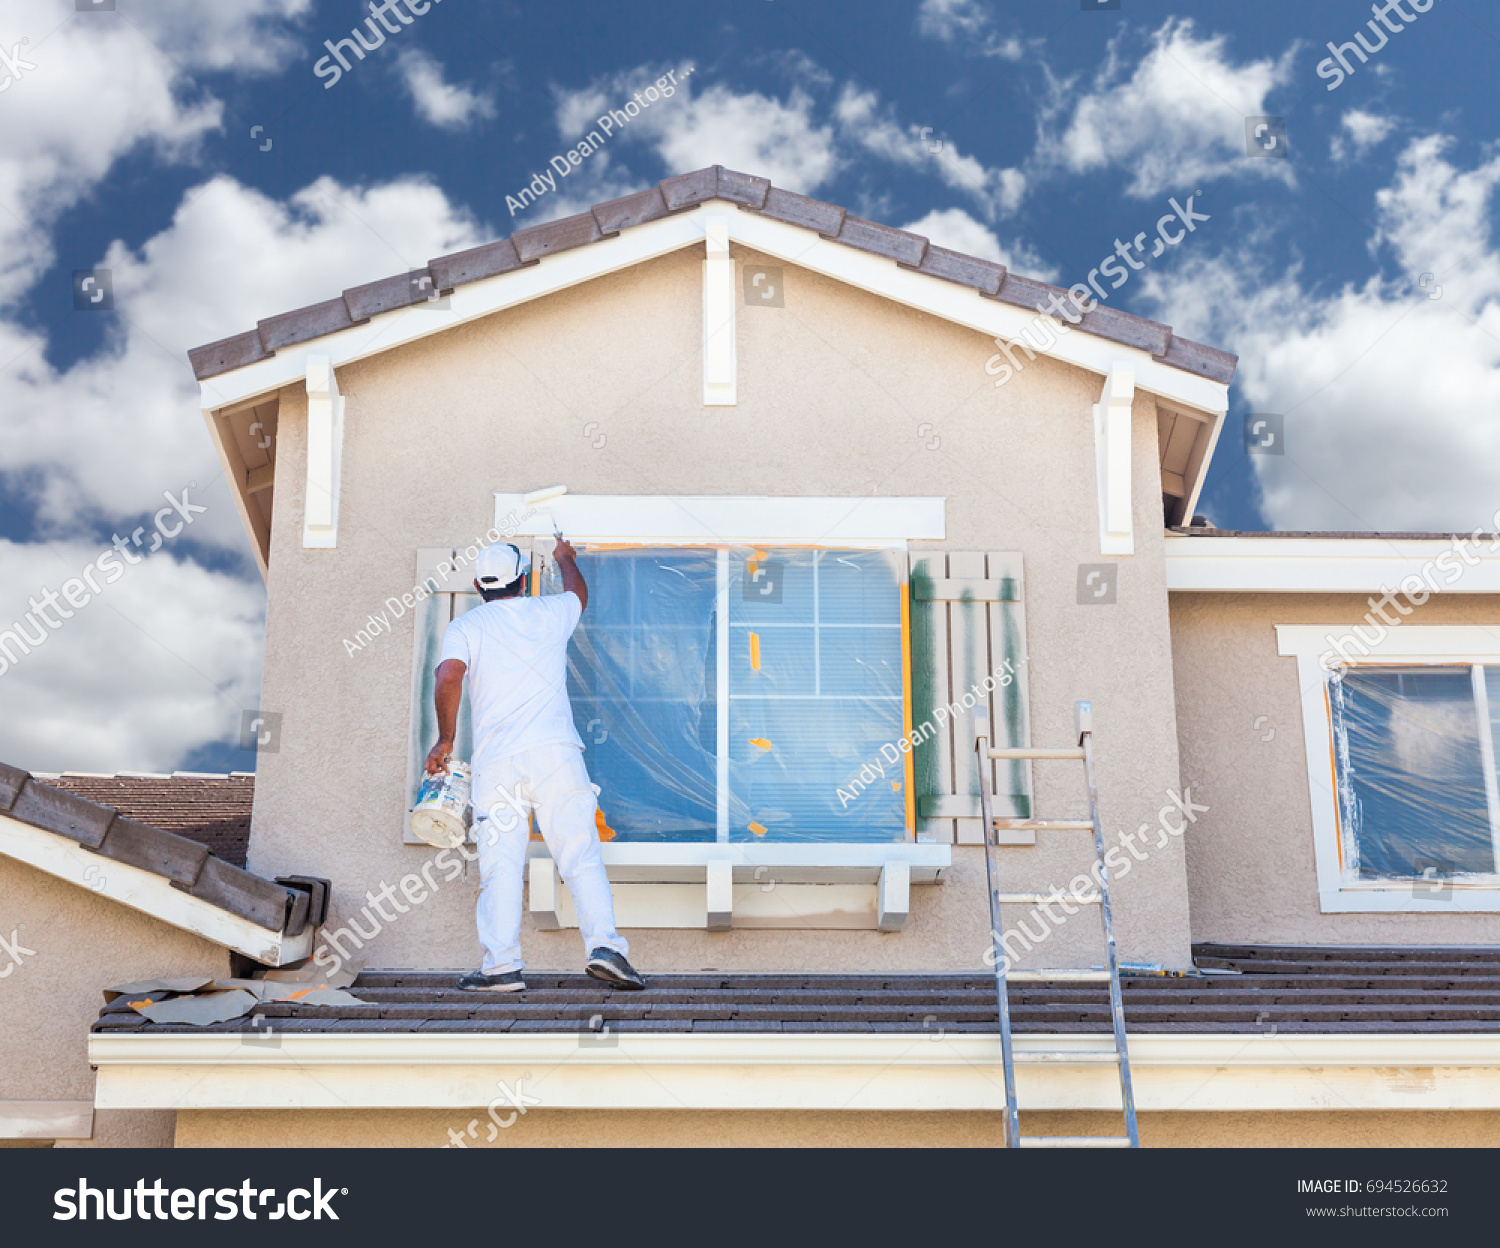 stock-photo-professional-house-painter-painting-the-trim-and-shutters-of-a-home-694526632